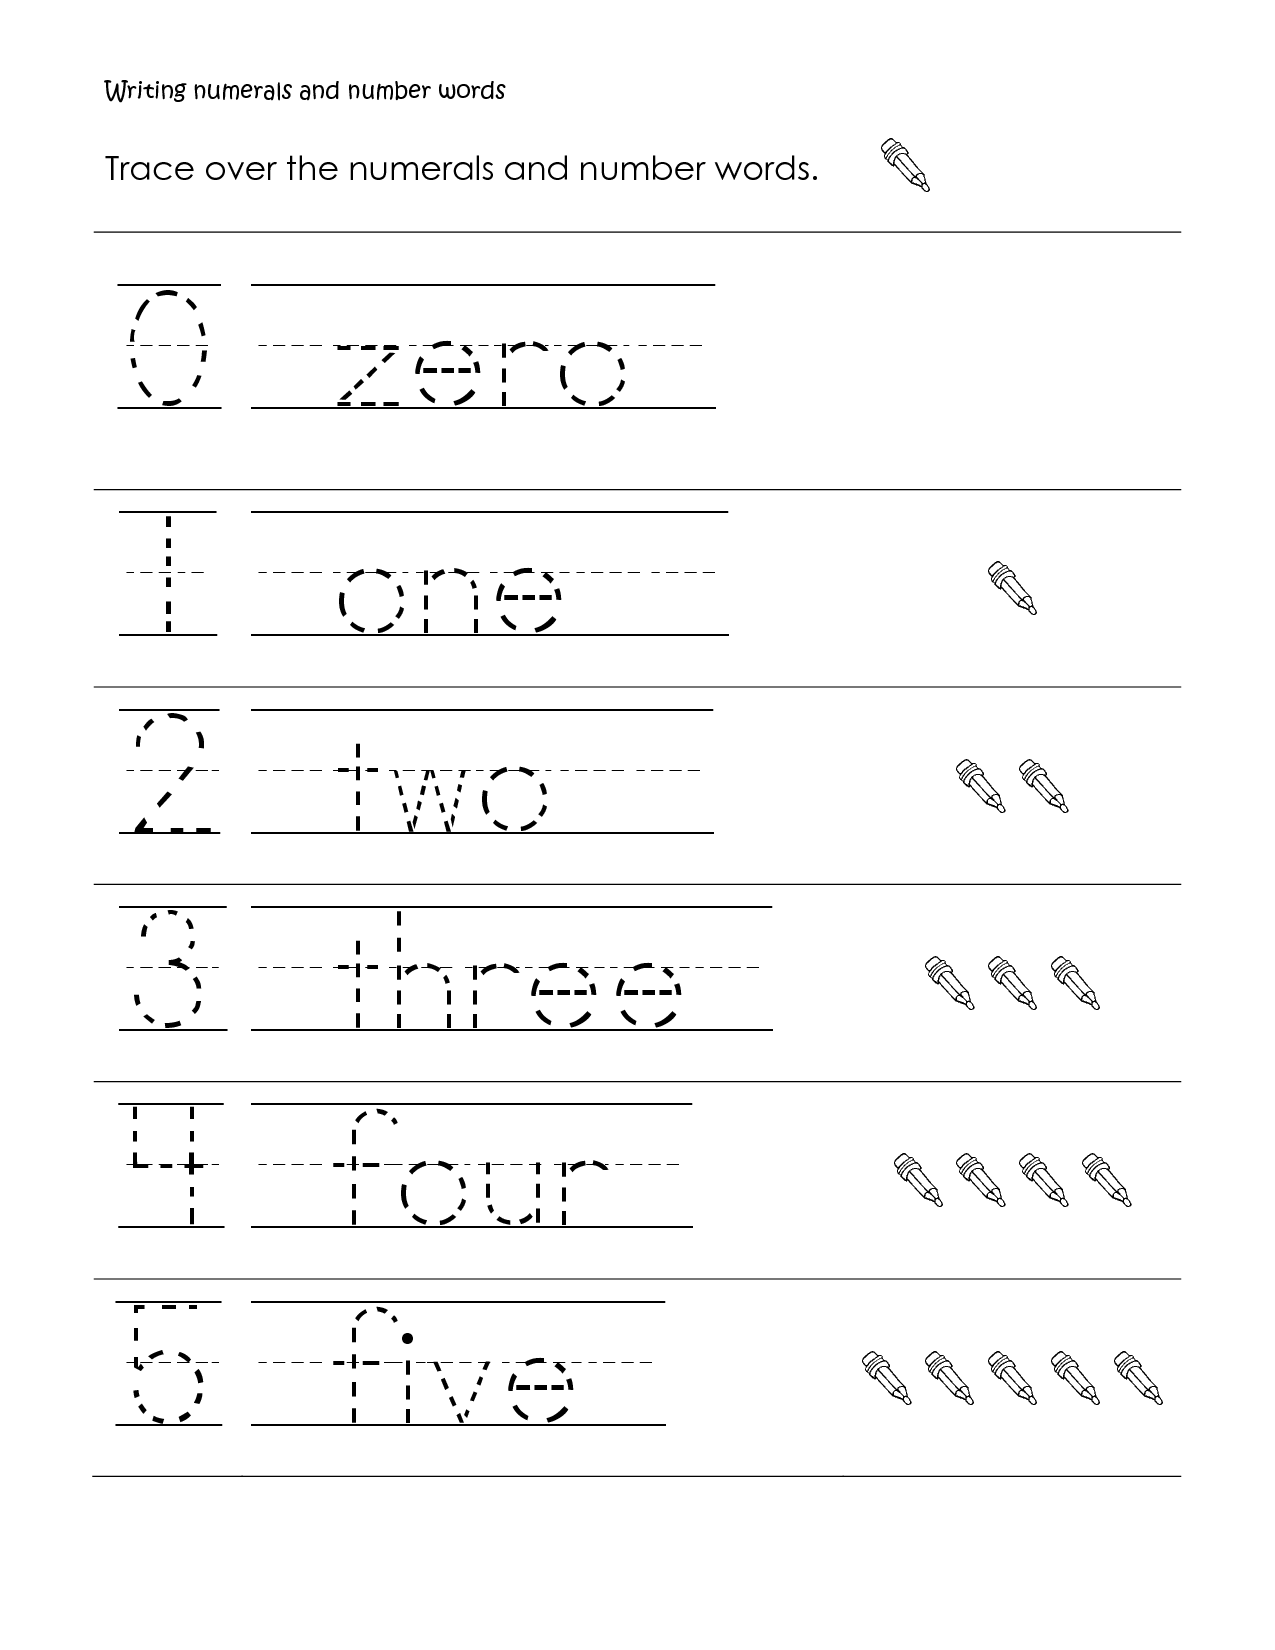 Printables Free Printable Writing Worksheets For 1st Grade first grade handwriting worksheets free writing number words printable